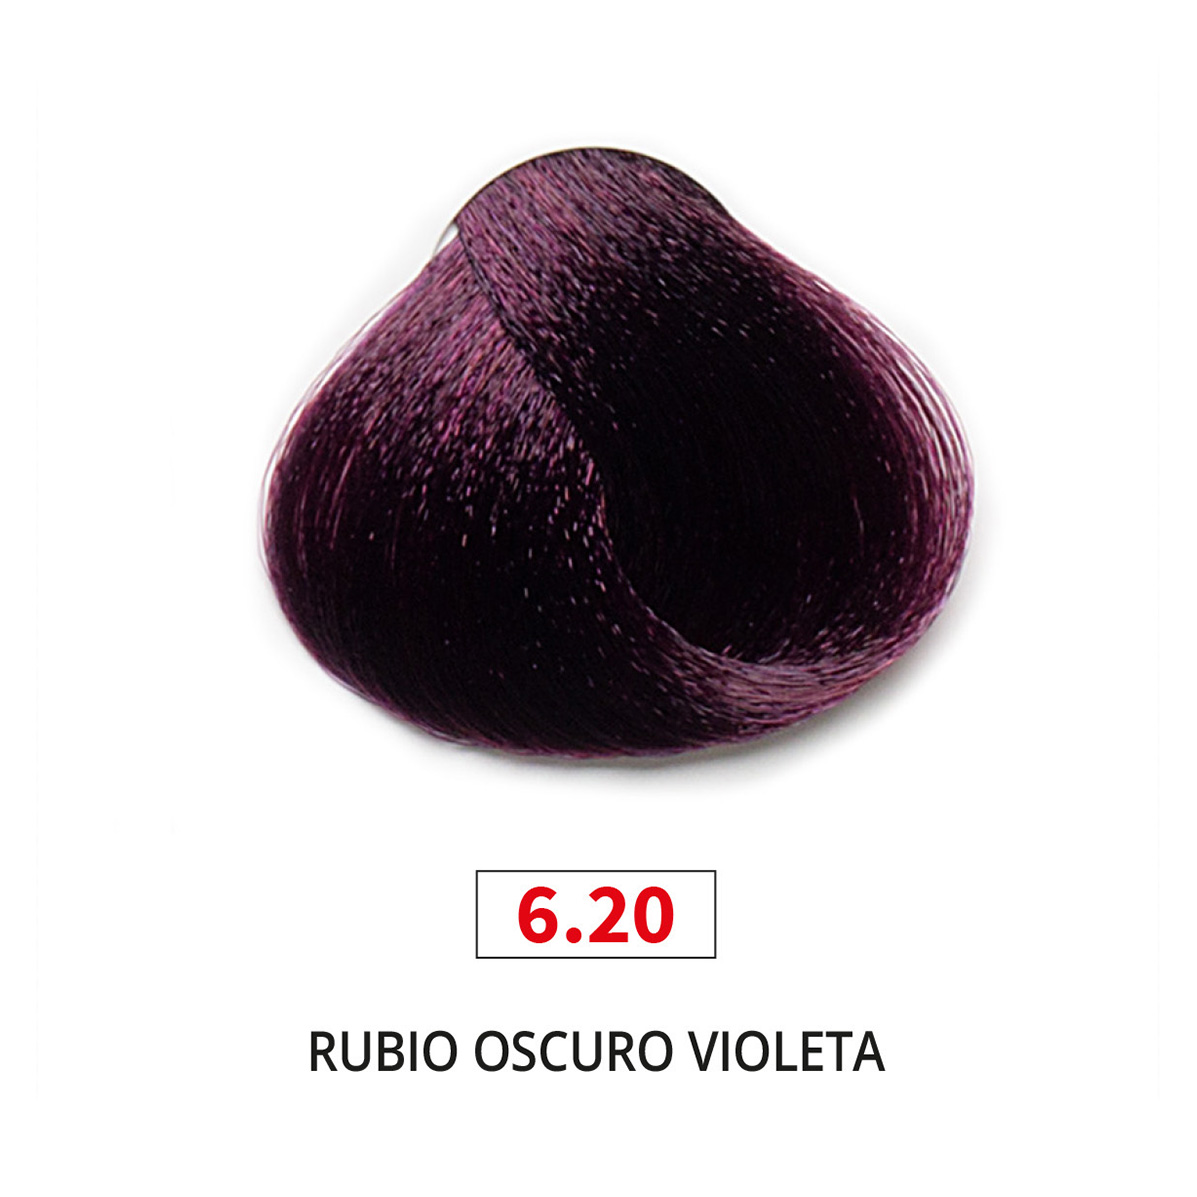 Violeta 6.20 - Yanguas Professional